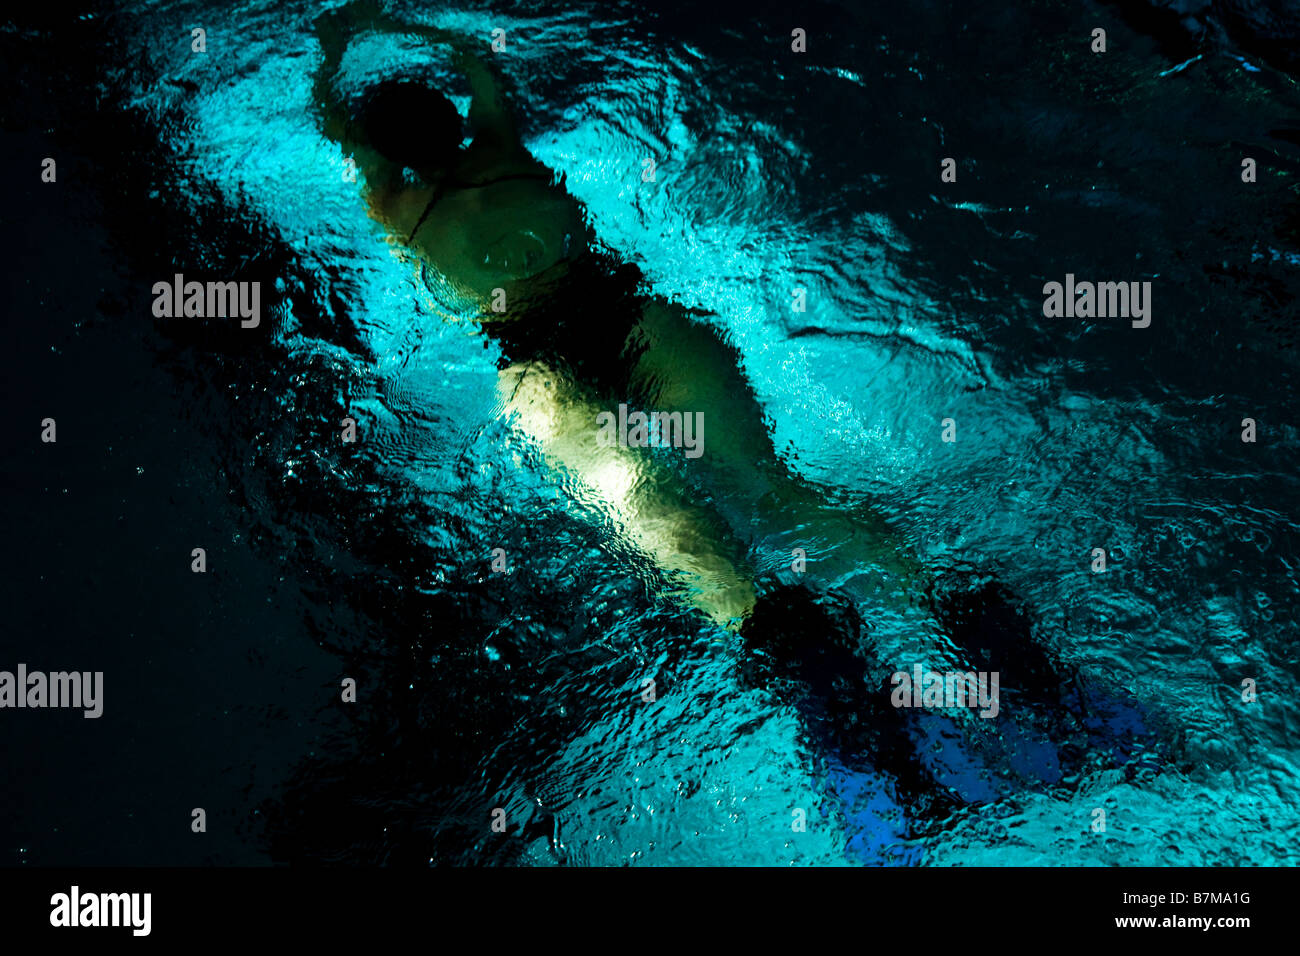 Underwater - Stock Image